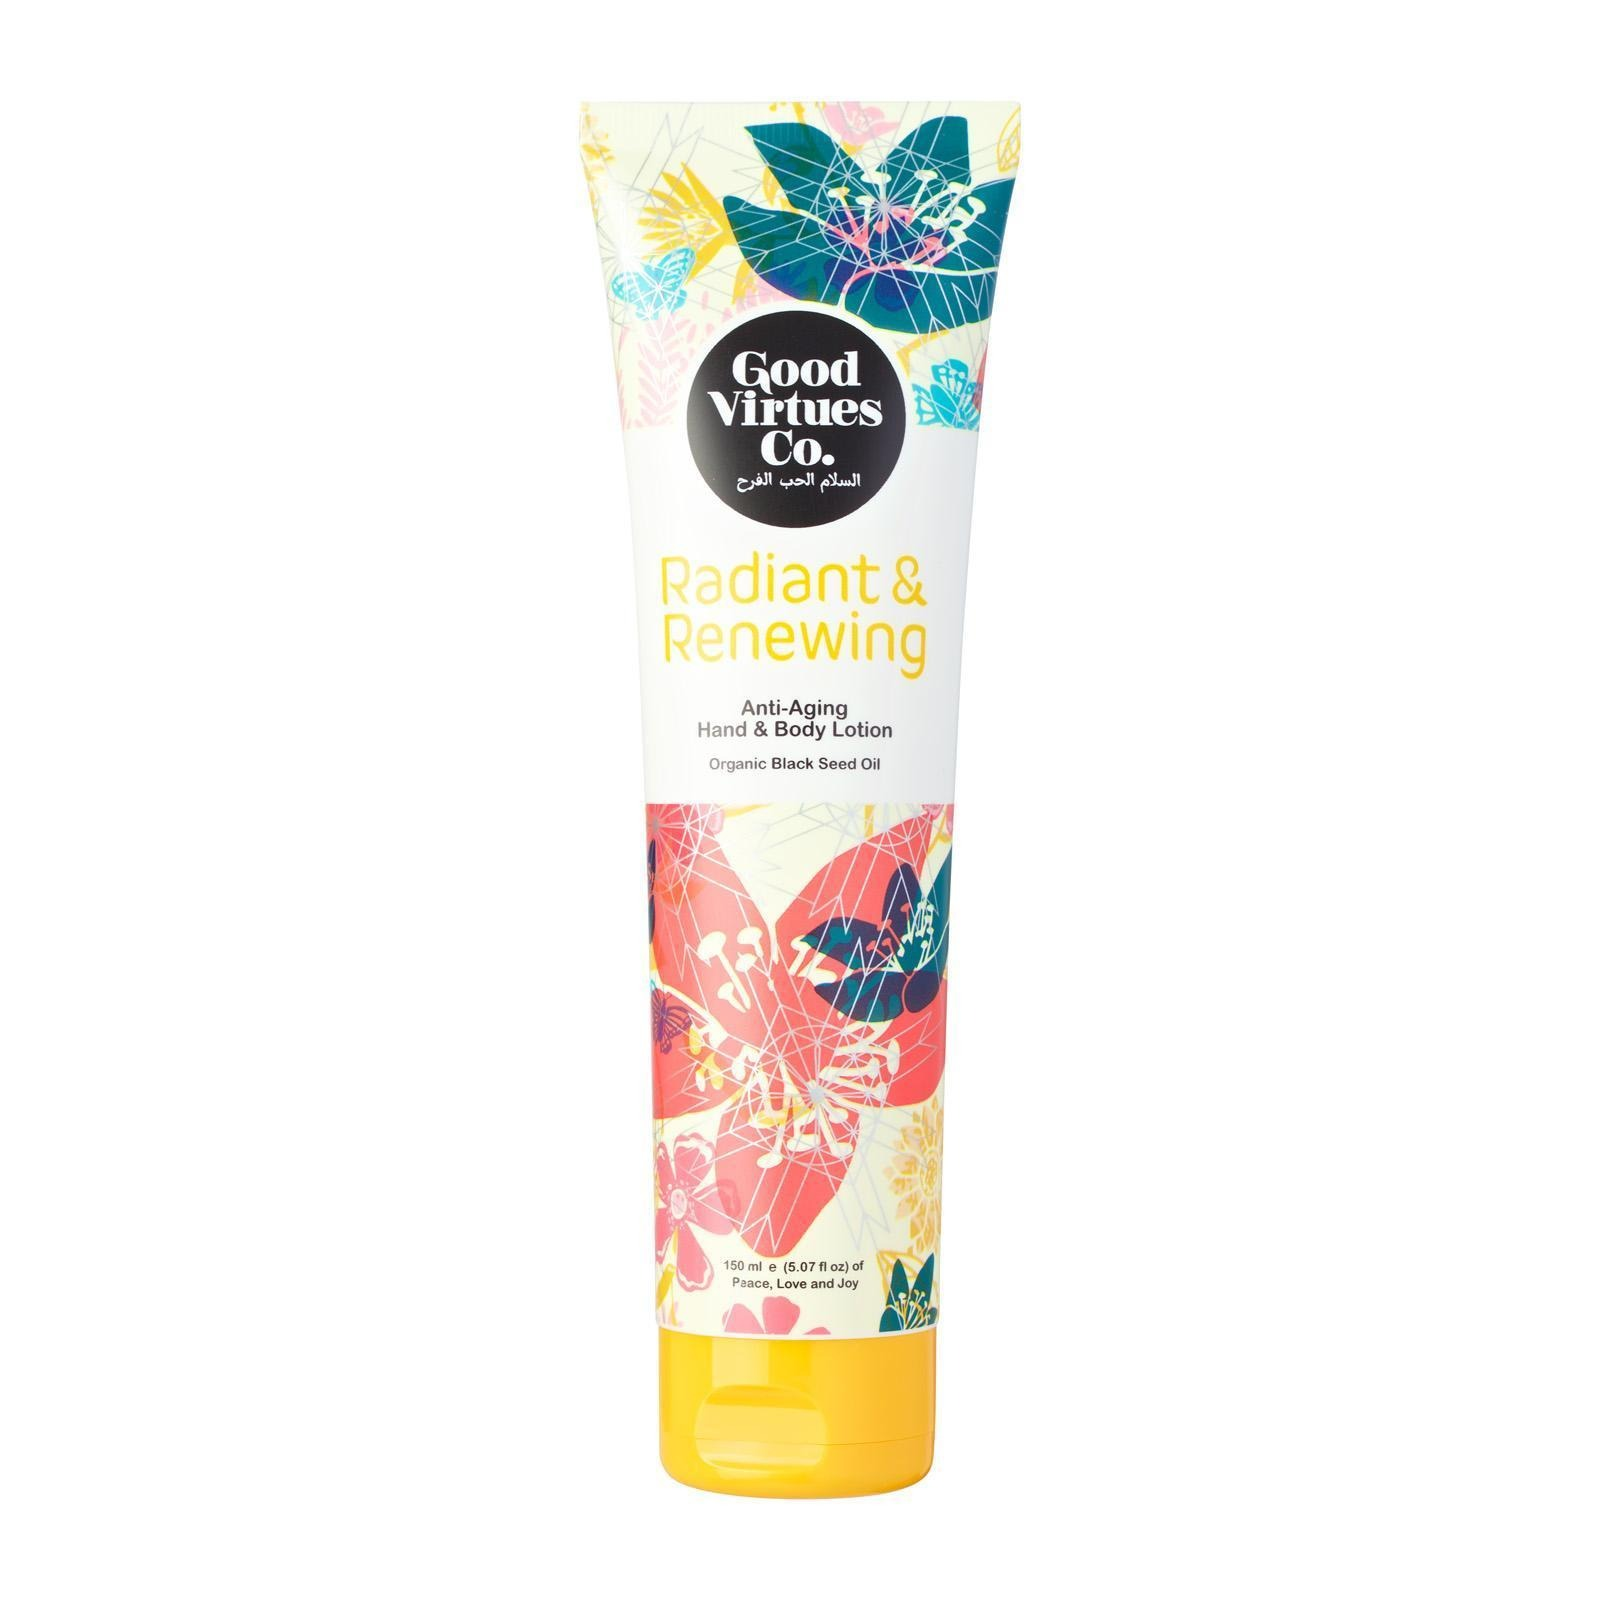 Good Virtues Co. Radiant & Renewing Anti-Aging Hand & Body Lotion